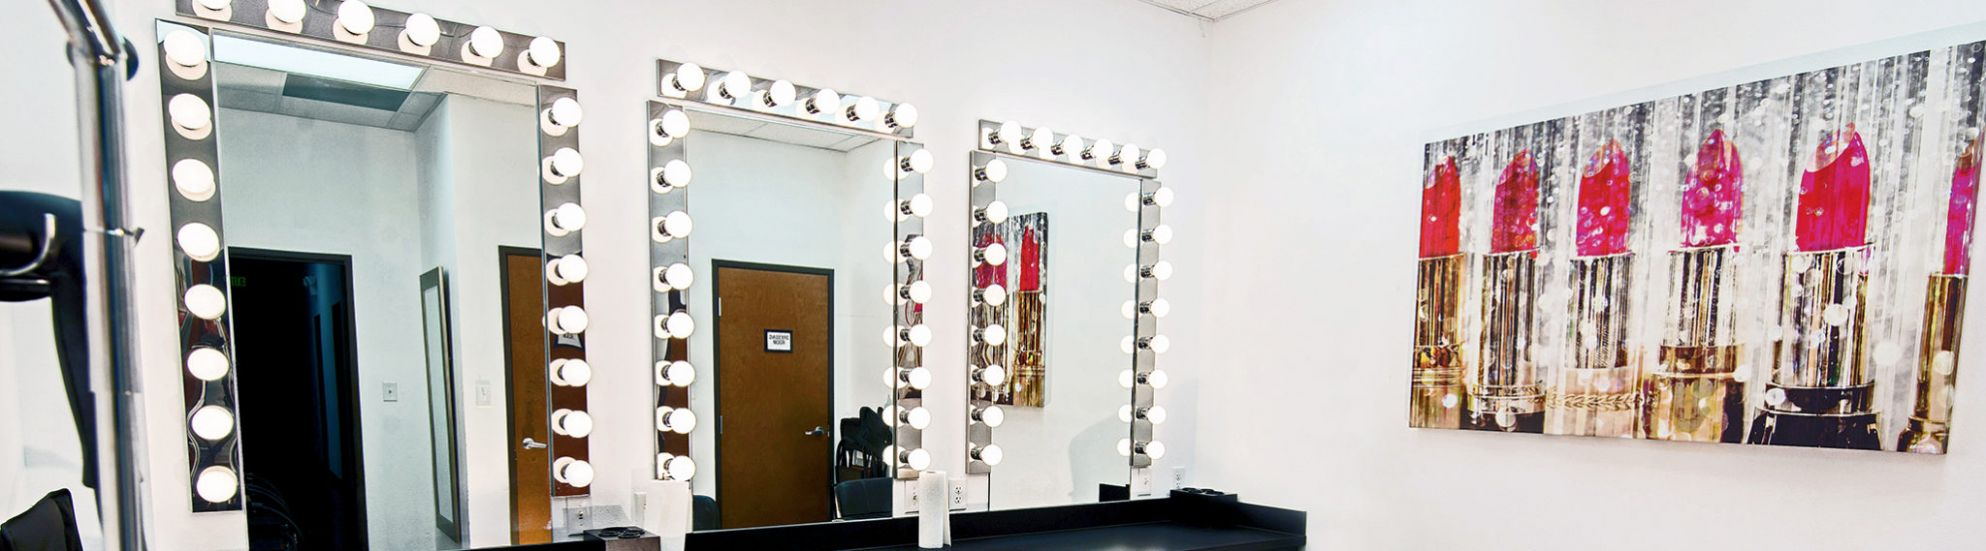 Makeup Room – Camera Ready Studios, LLC – North Dallas rental studios